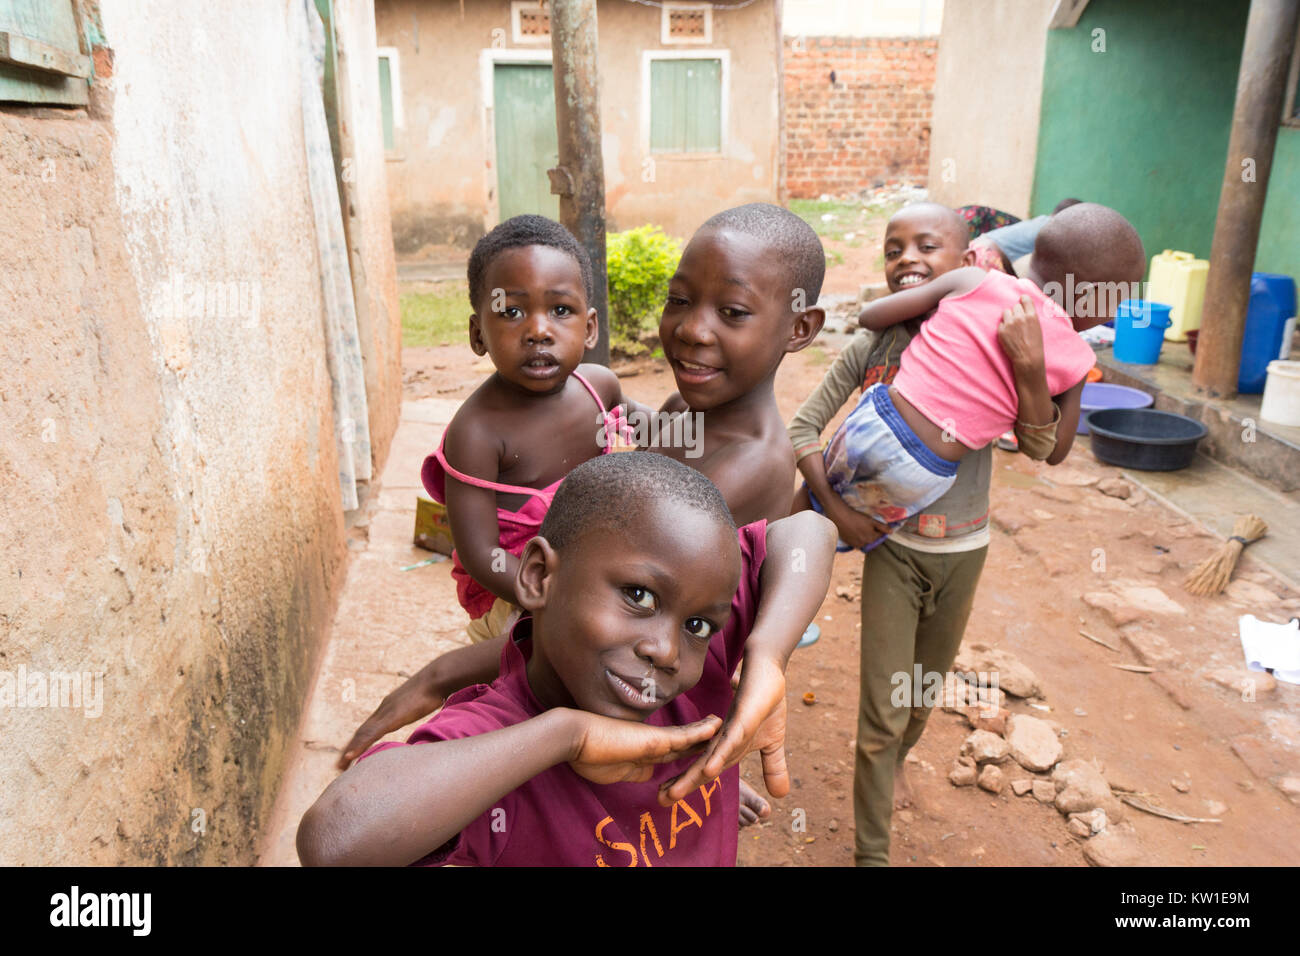 Lugazi, Uganda. June 09 2017. Young African boys holding their siblings in their arms. Girls in the background are - Stock Image